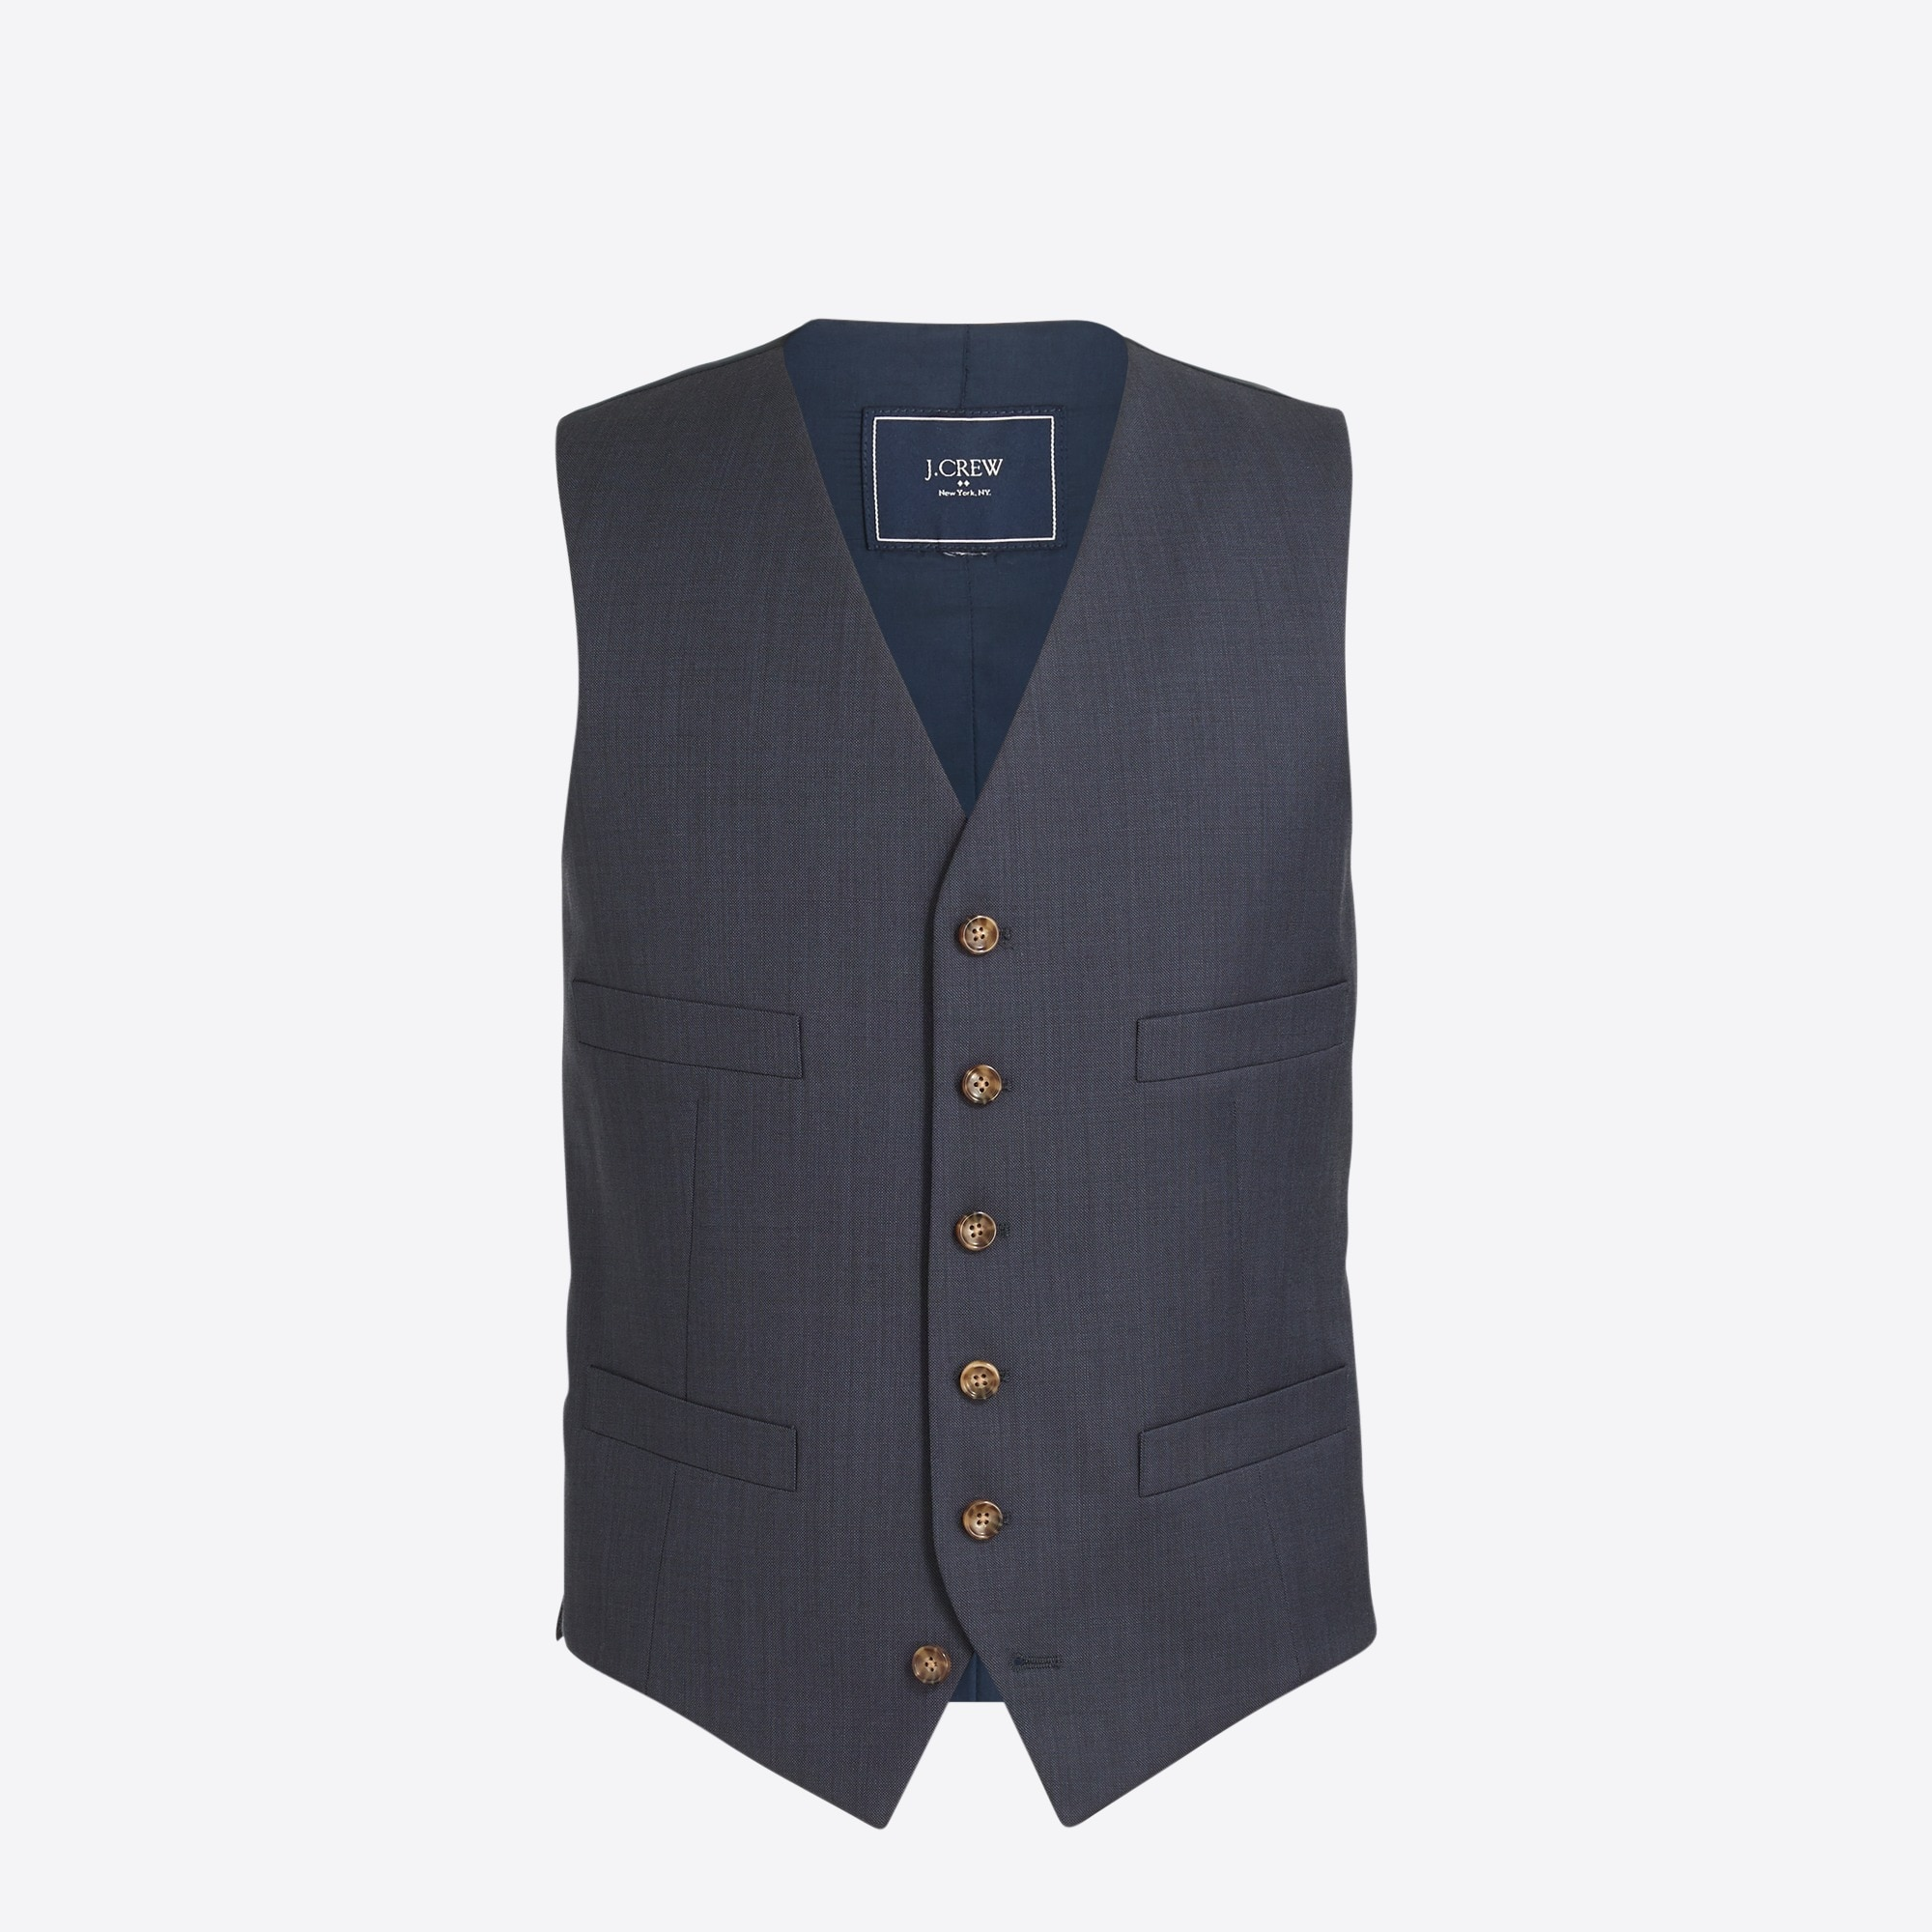 Image 2 for Thompson suit vest in worsted wool